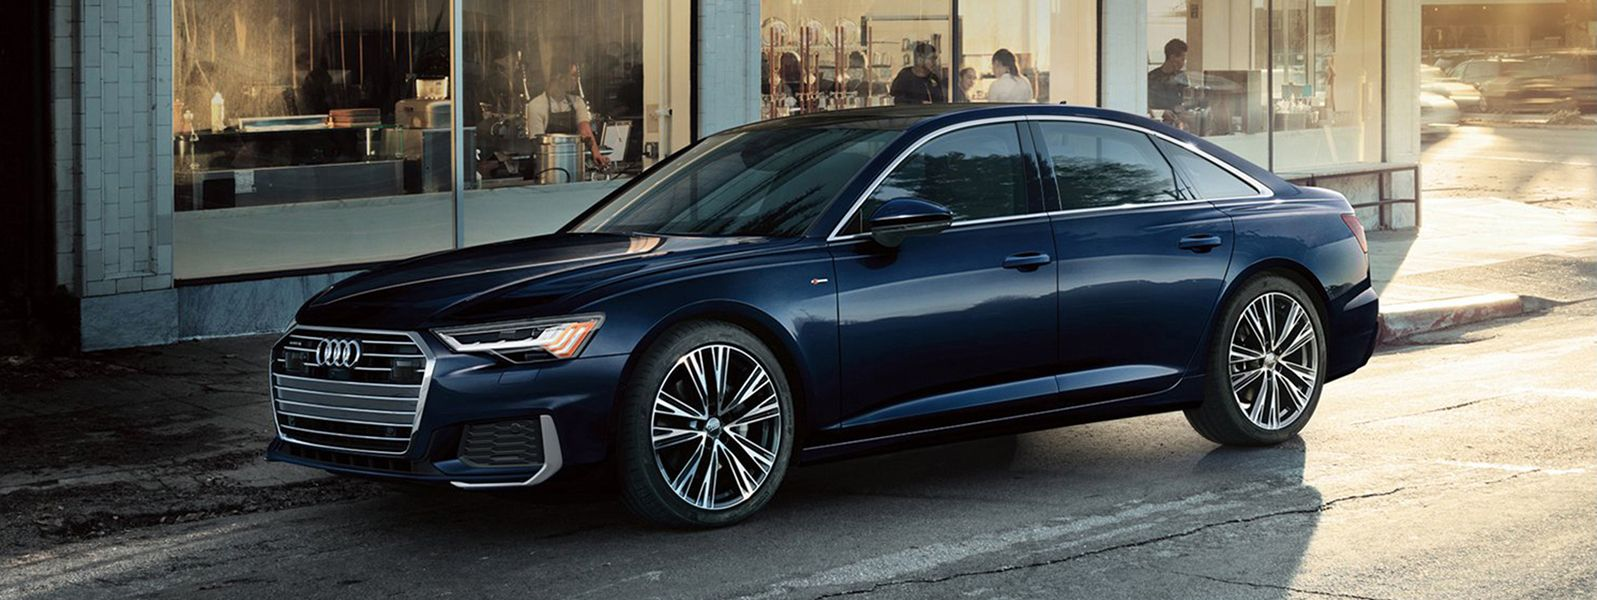 Audi A6 Vs Bmw 5 Series Vs Mercedes Benz E Class